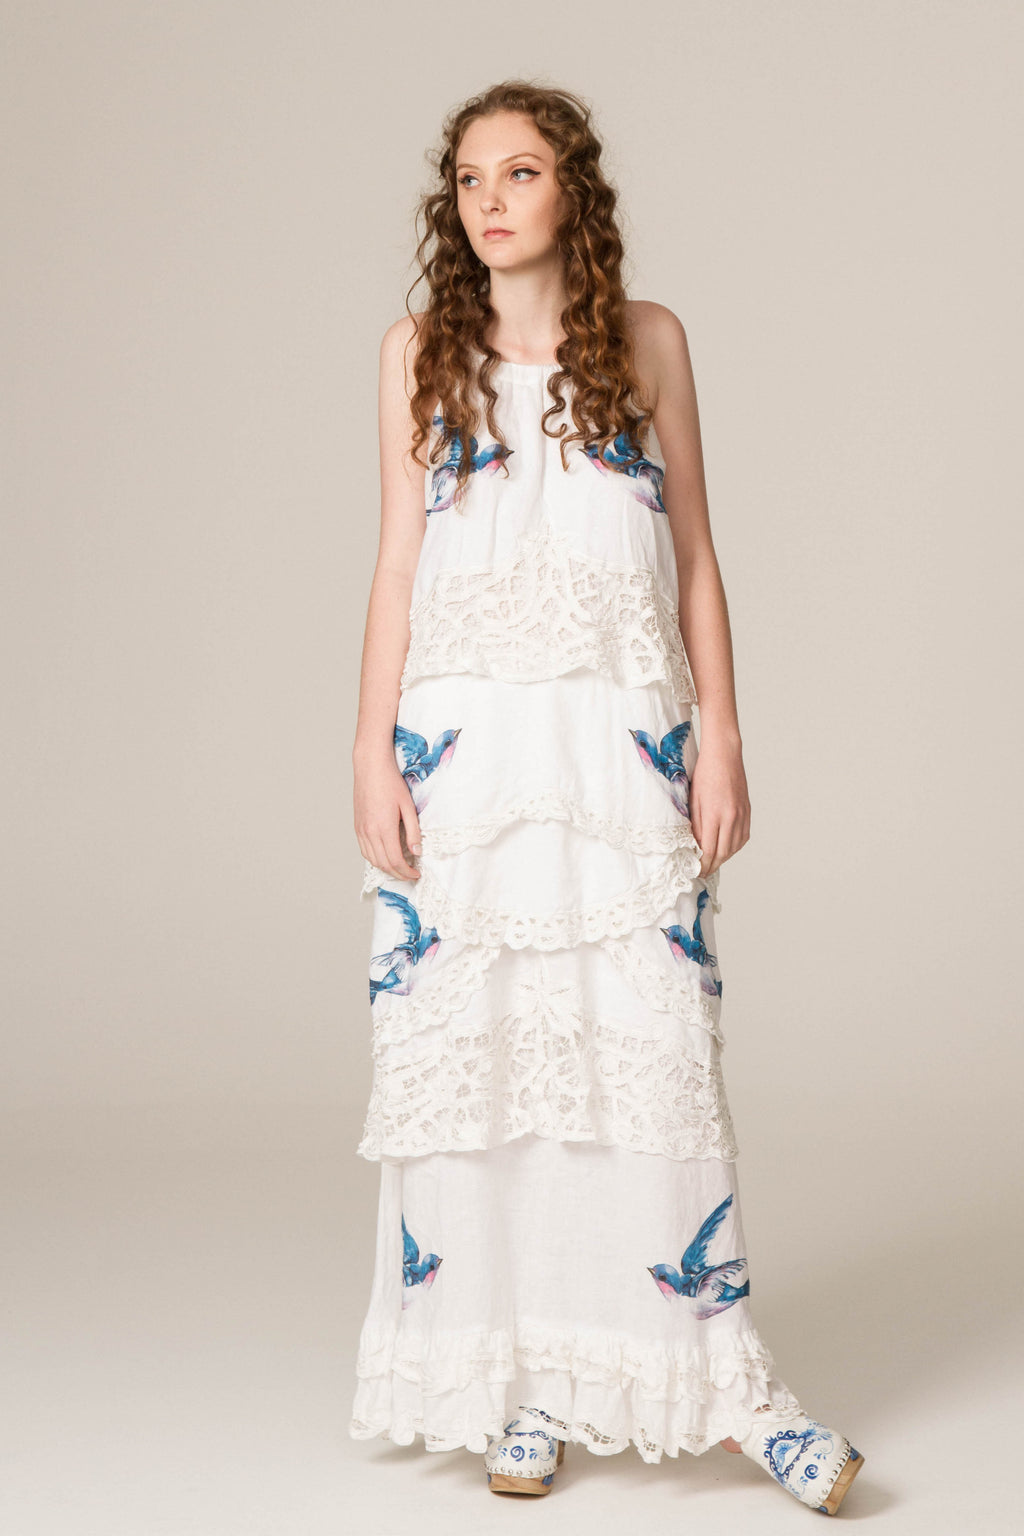 SOMEDAY SOON' - HAND EMBROIDERED TRAPEZE DRESS